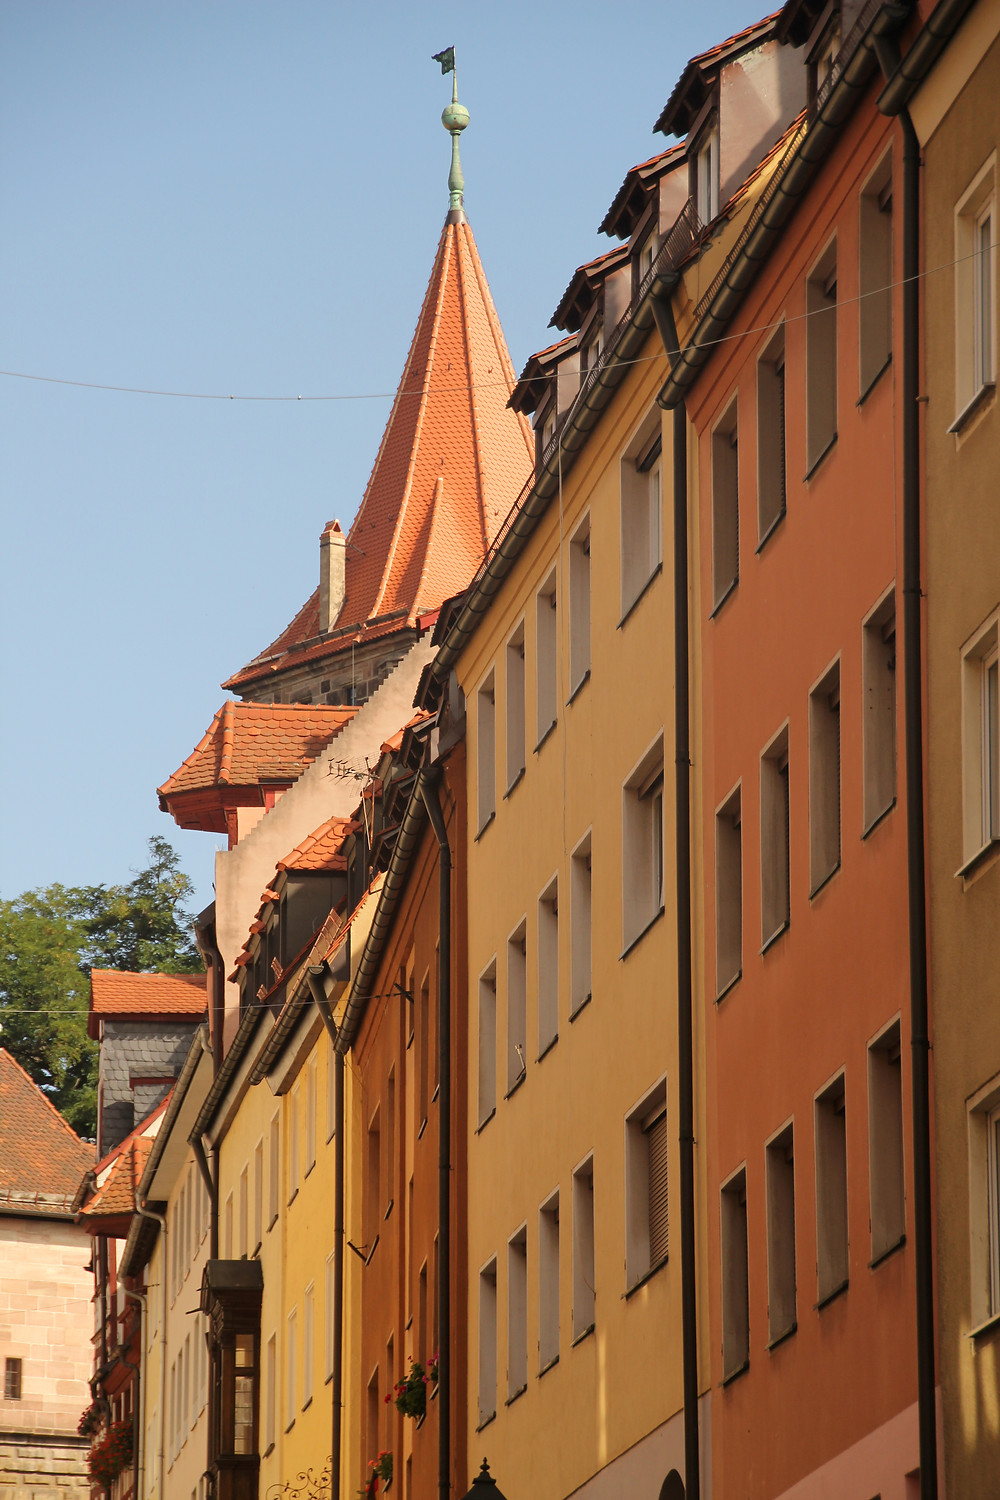 more colorful facades in Nuremberg Germany